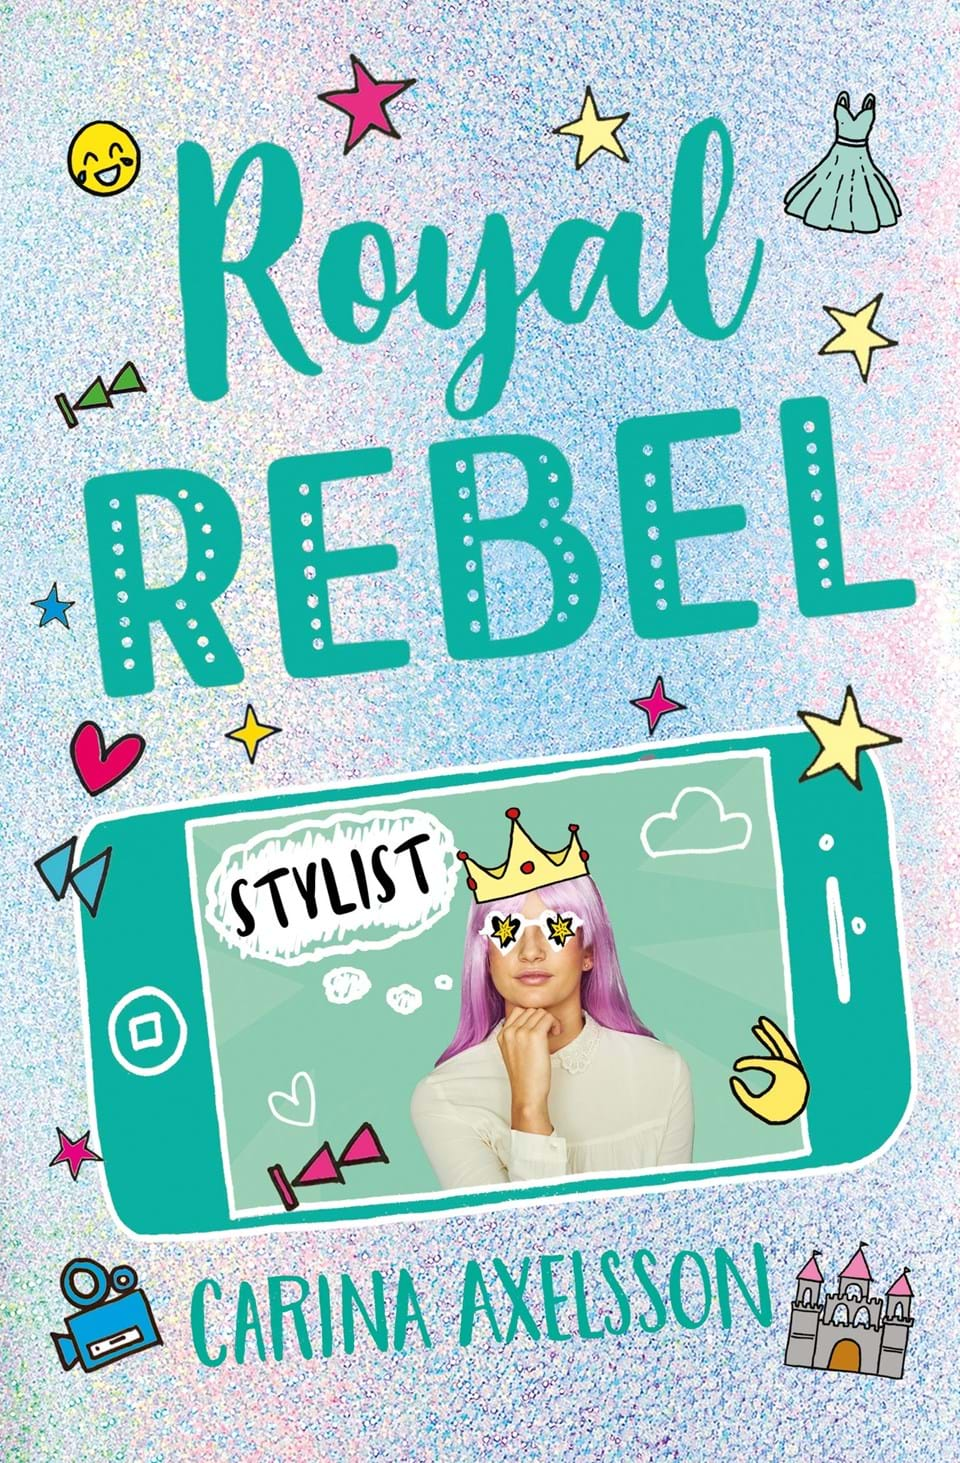 Royal Rebel Stylist At Usborne Books At Home